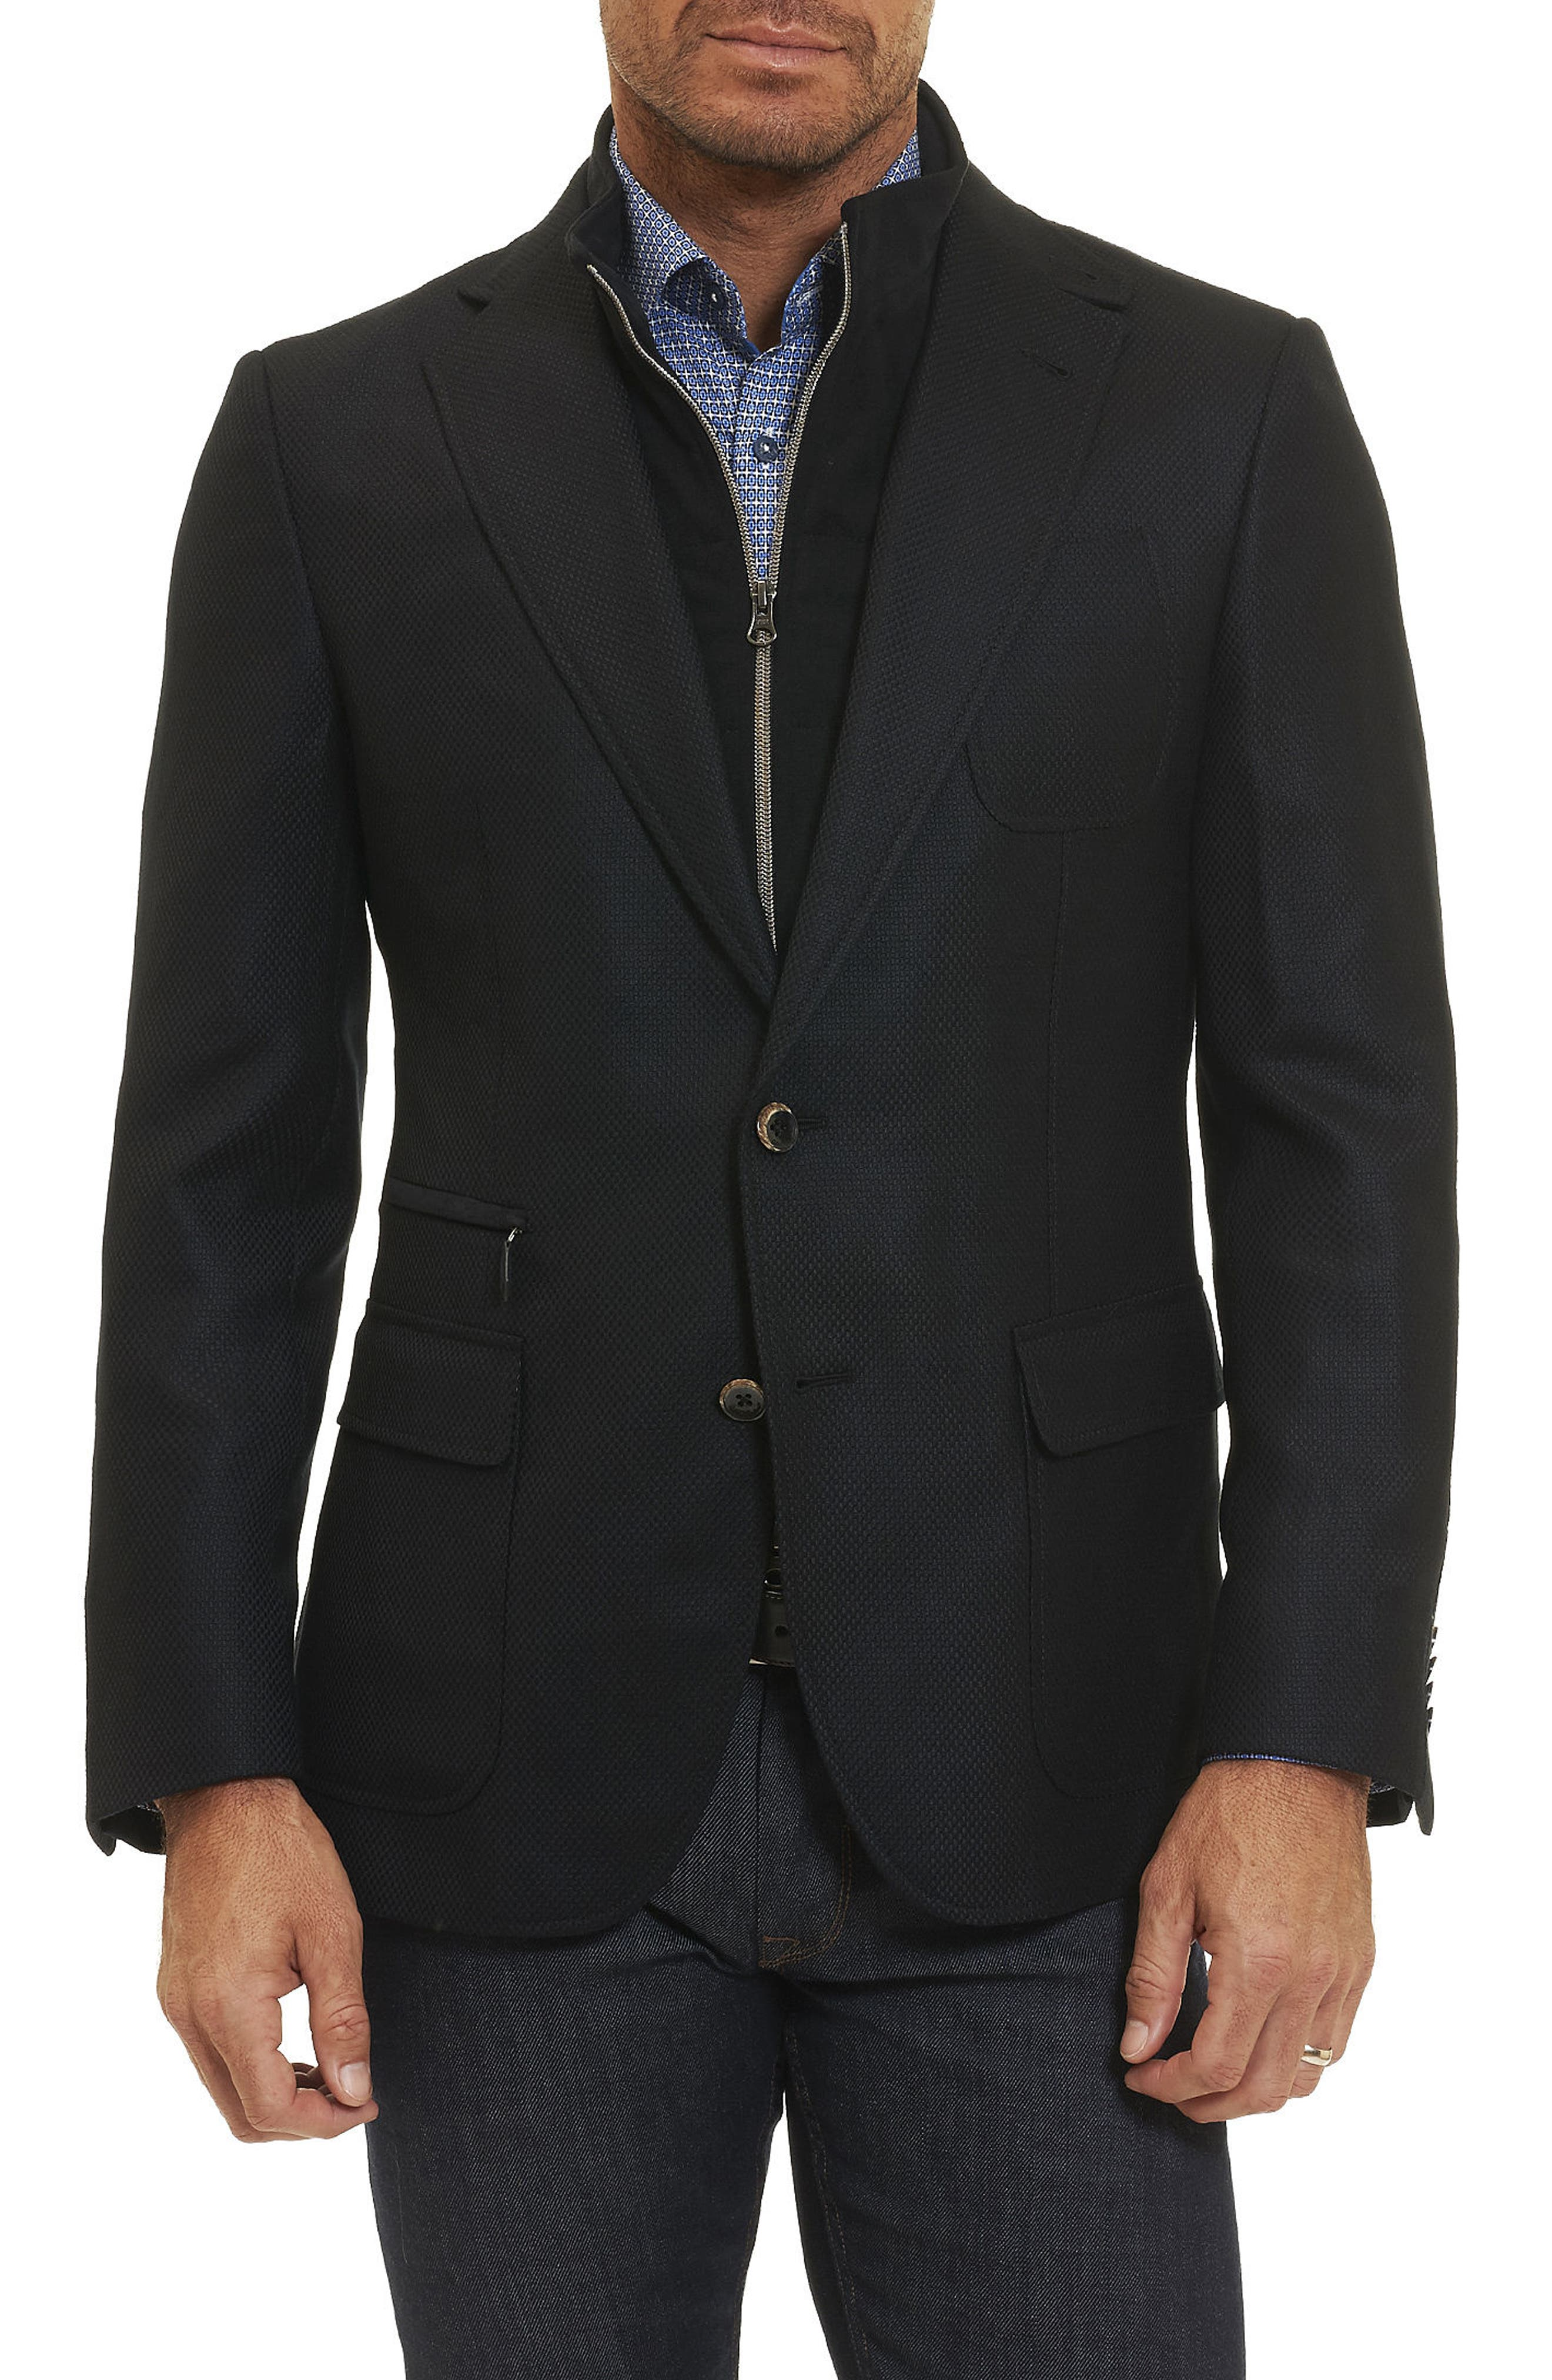 Downhill Sport Coat with Removable Bib,                         Main,                         color, Black